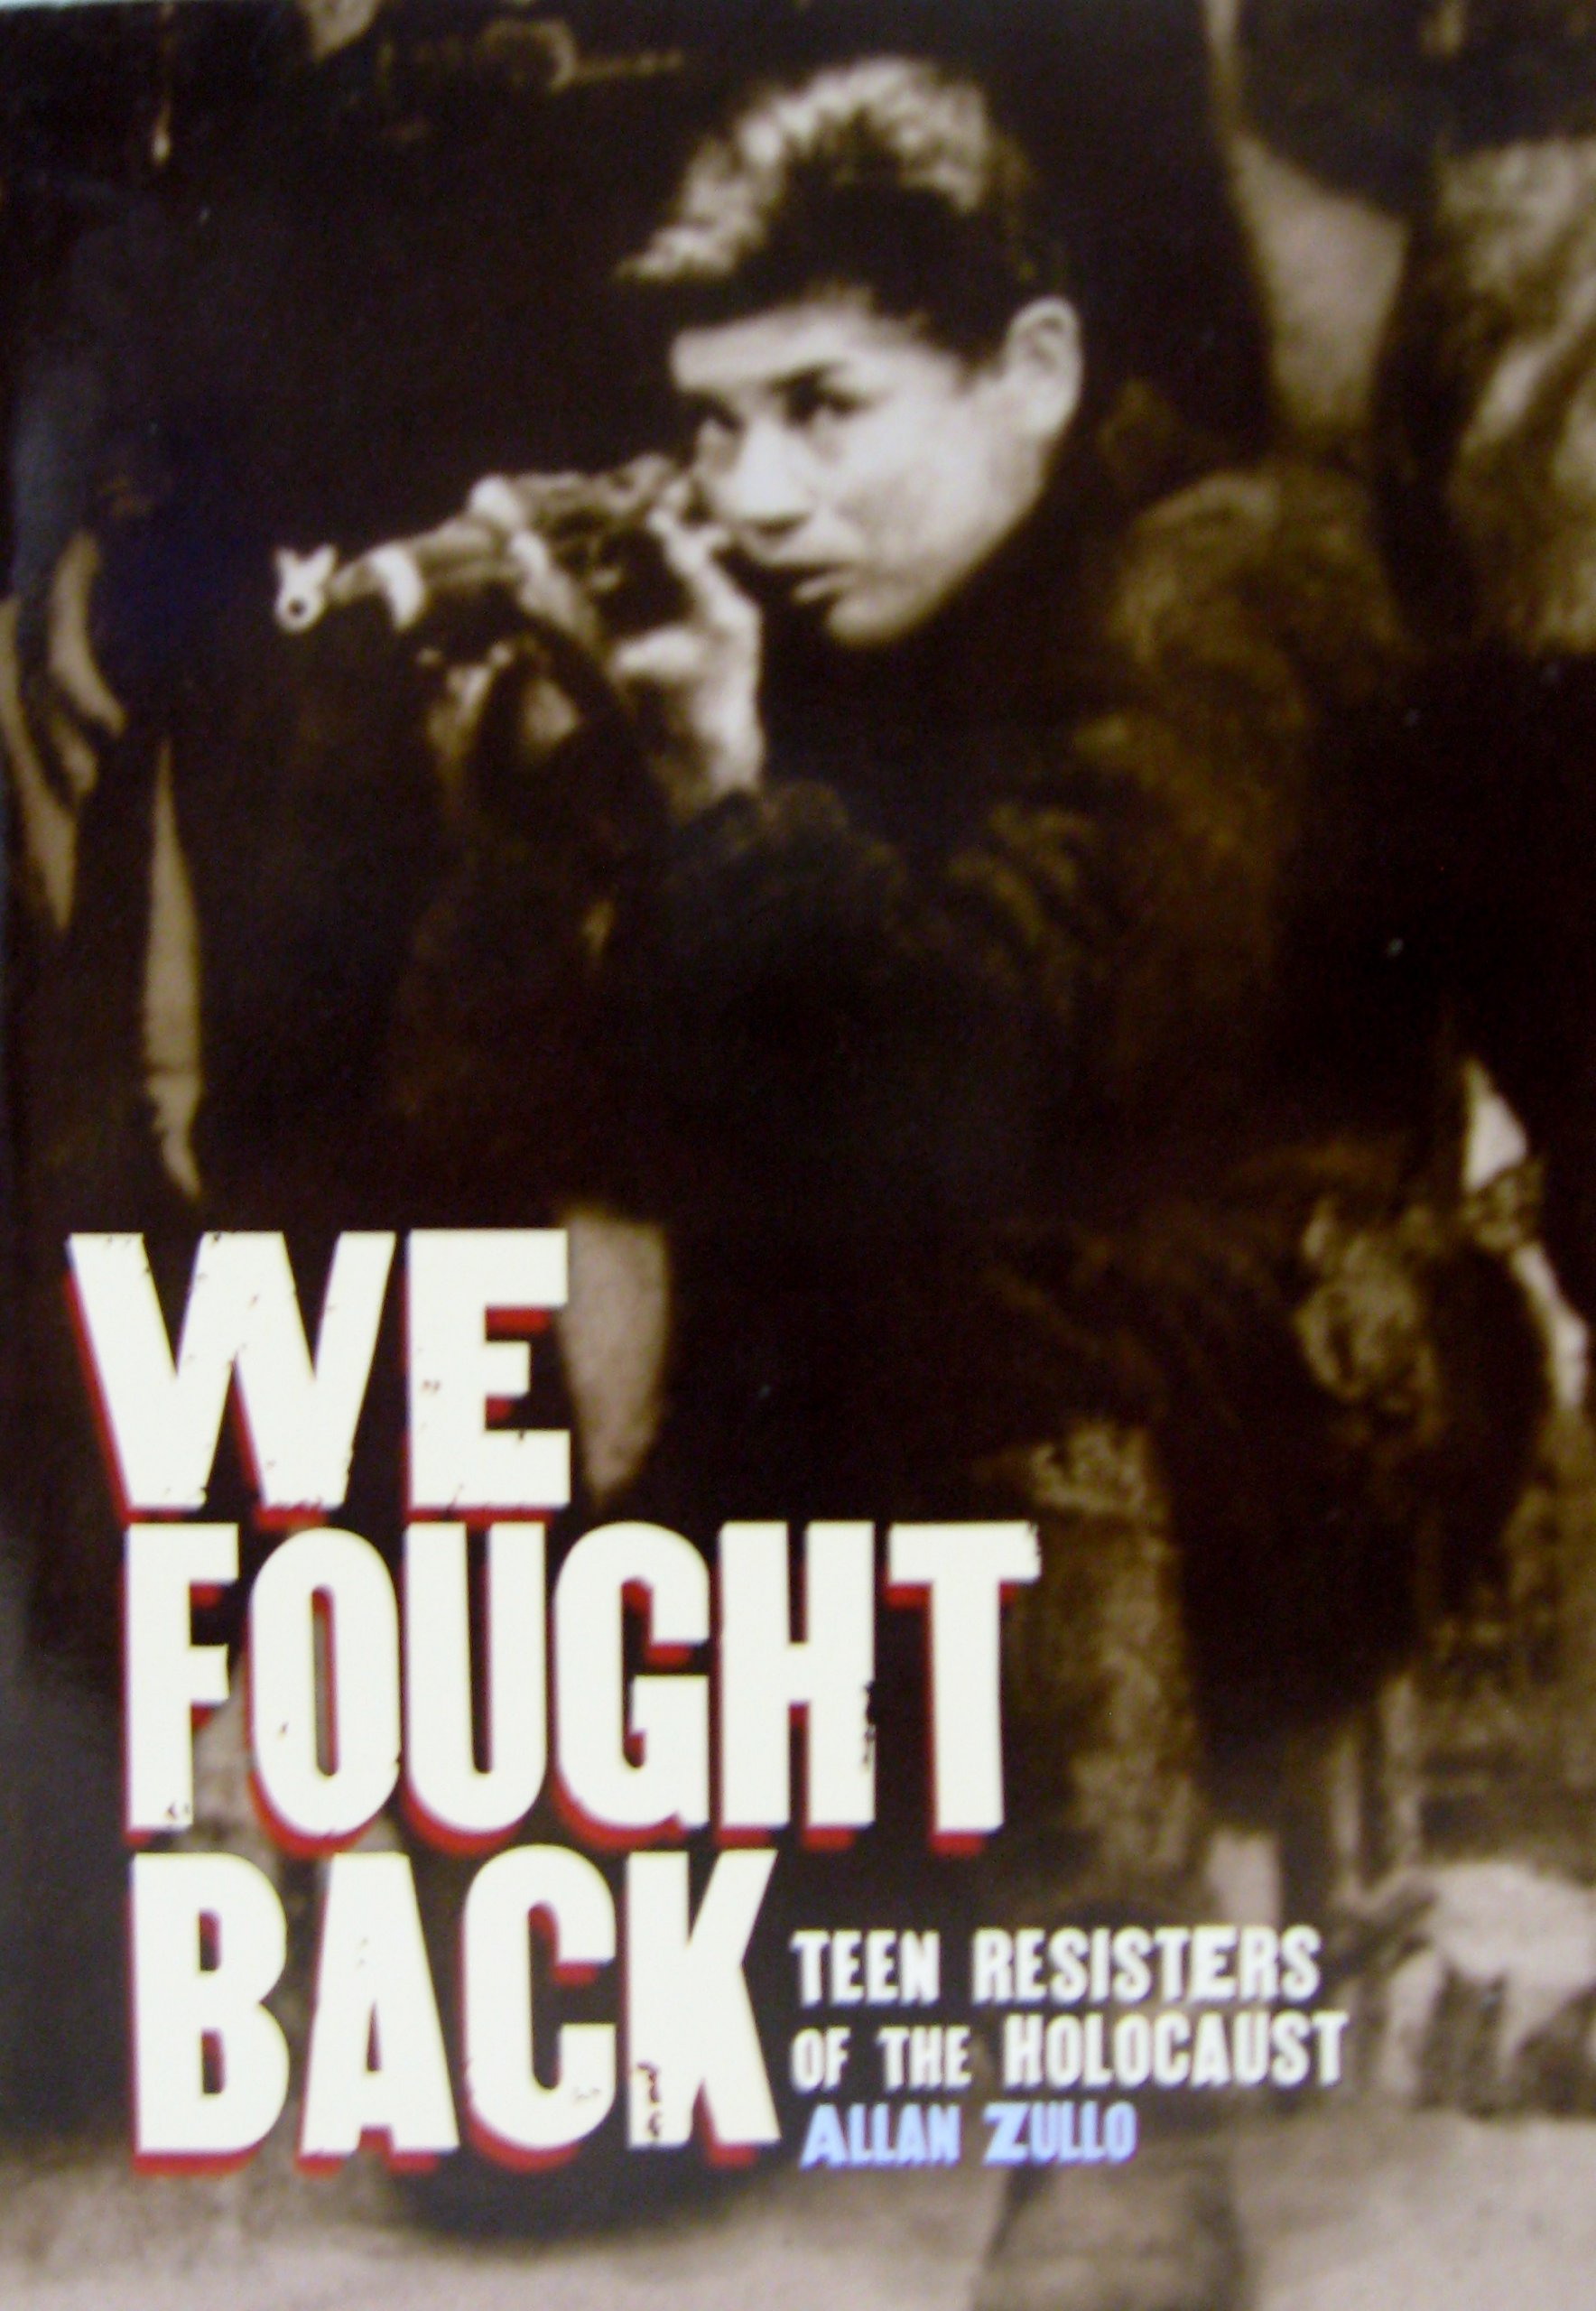 We Fought Back: Teen Resisters of the Holocaust - Allan Zullo